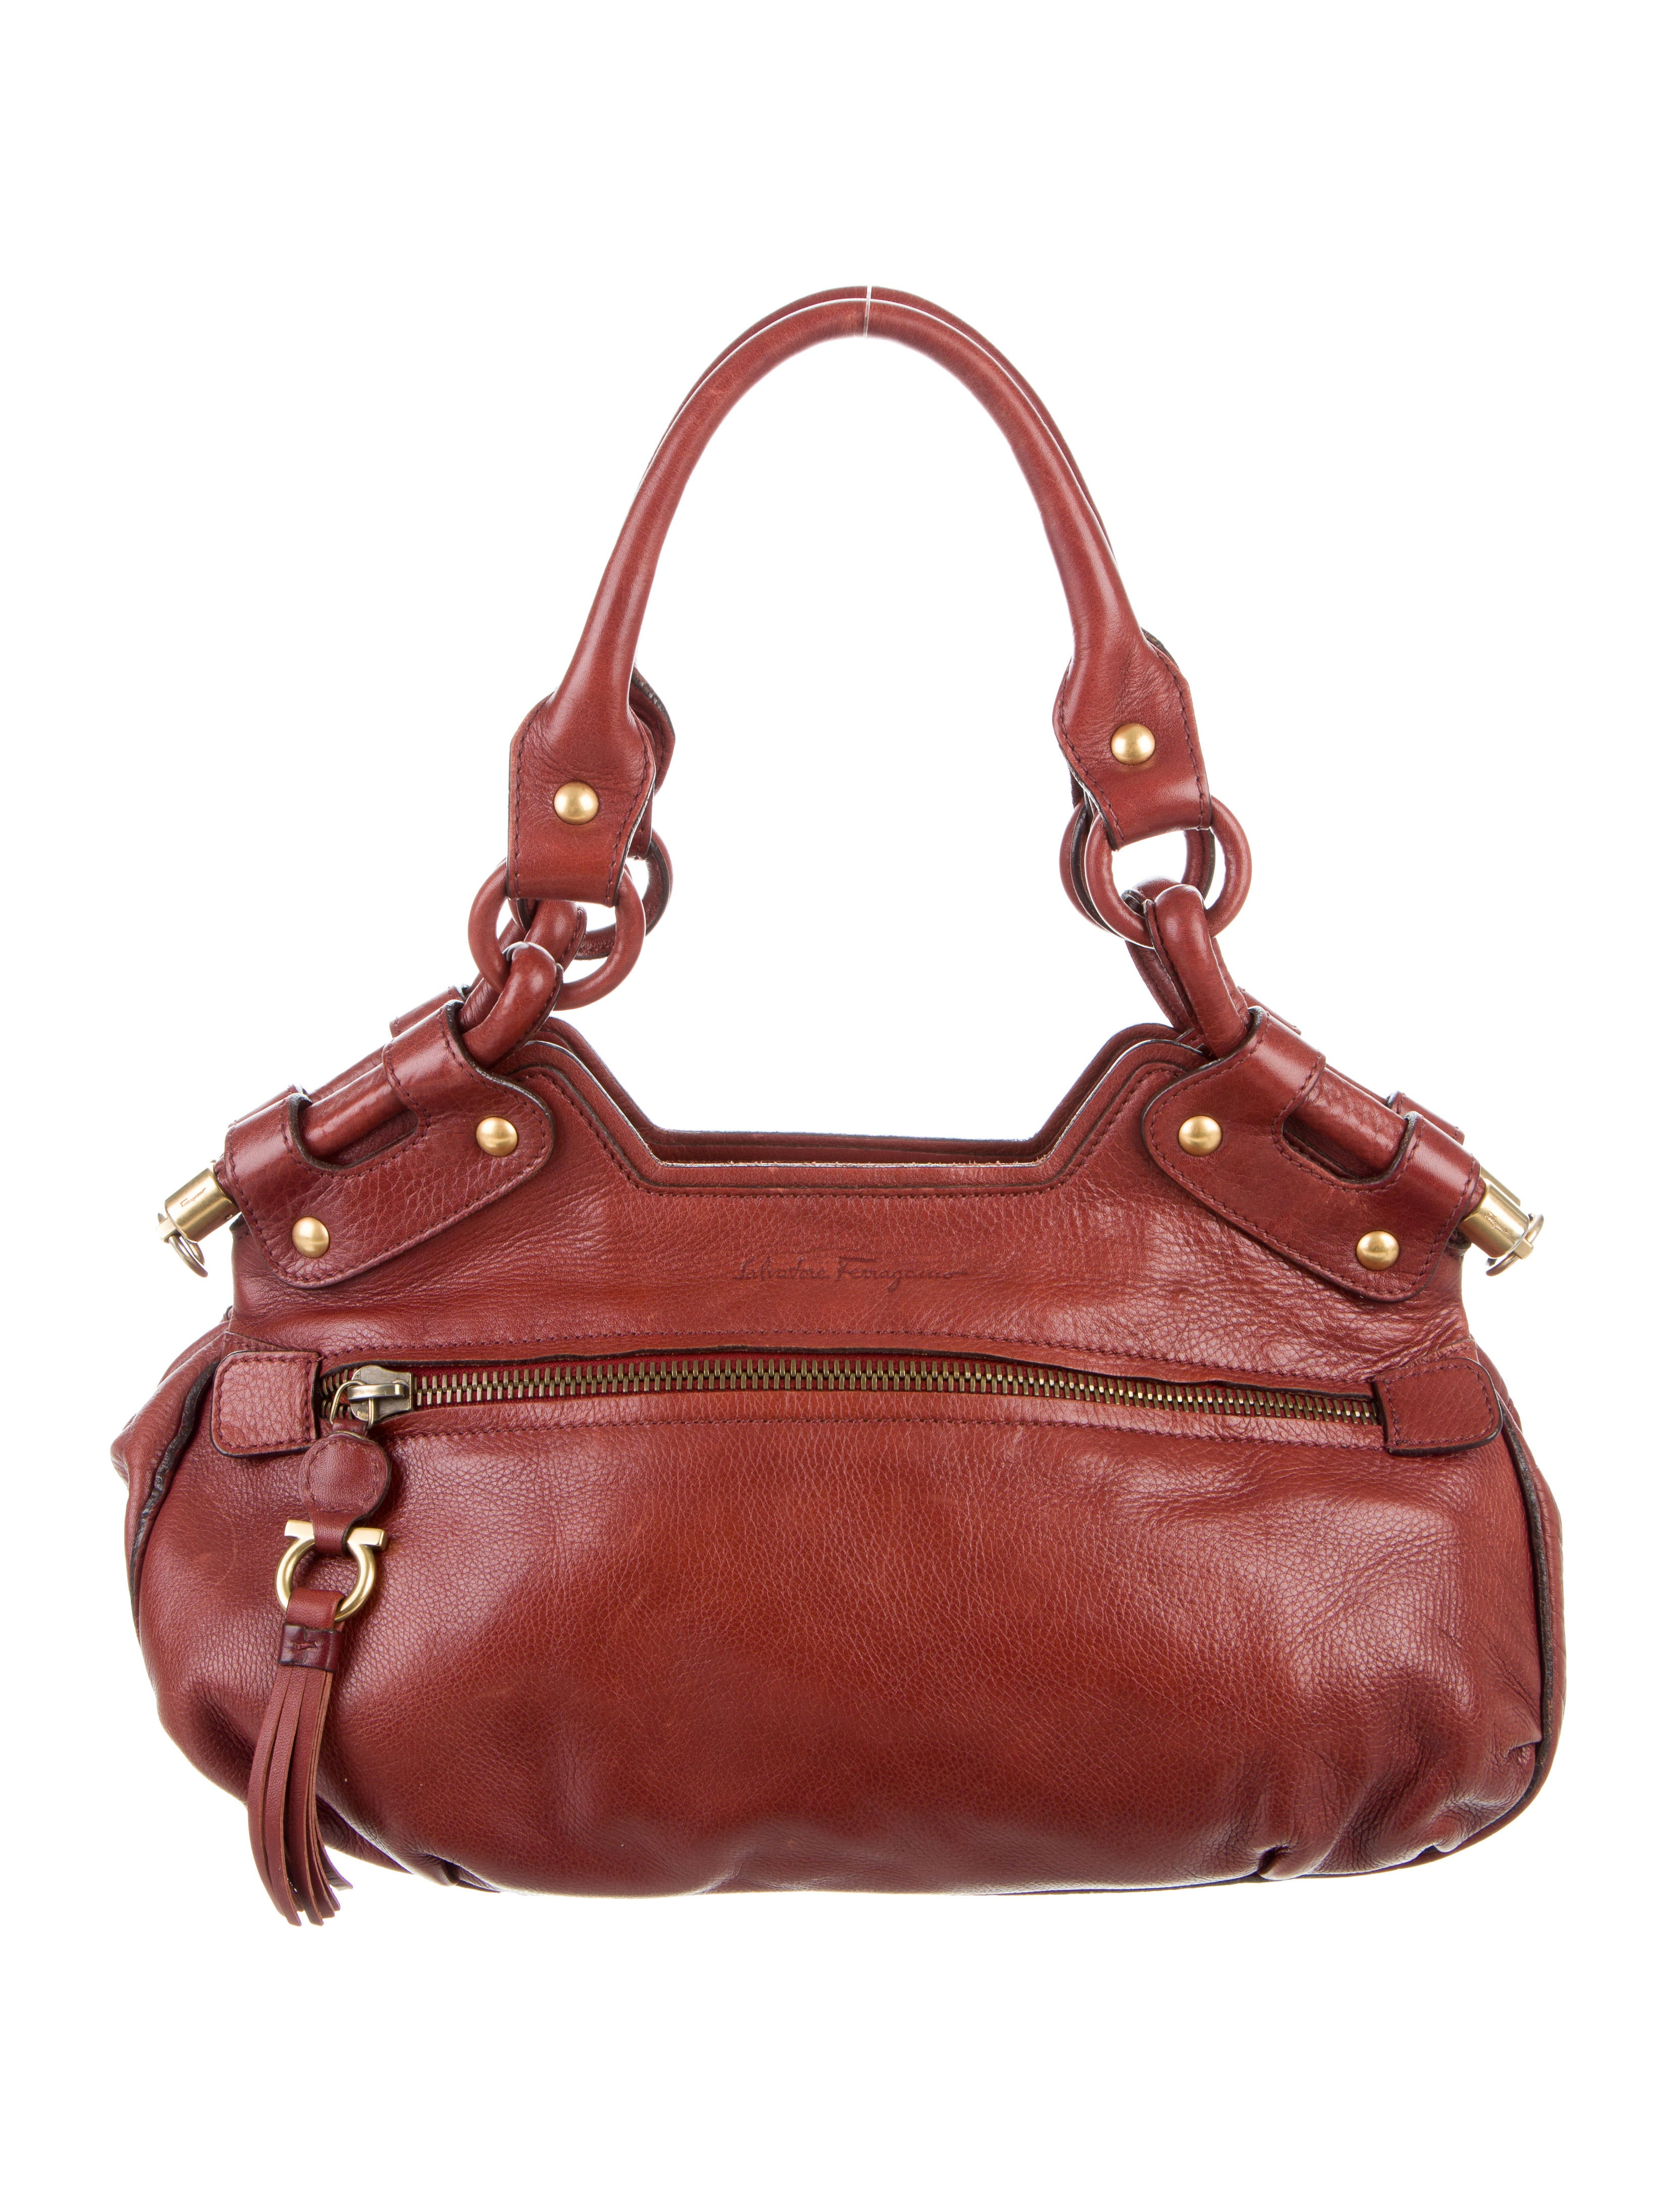 Contemporary Flatware Salvatore Ferragamo Leather Shoulder Bag Handbags